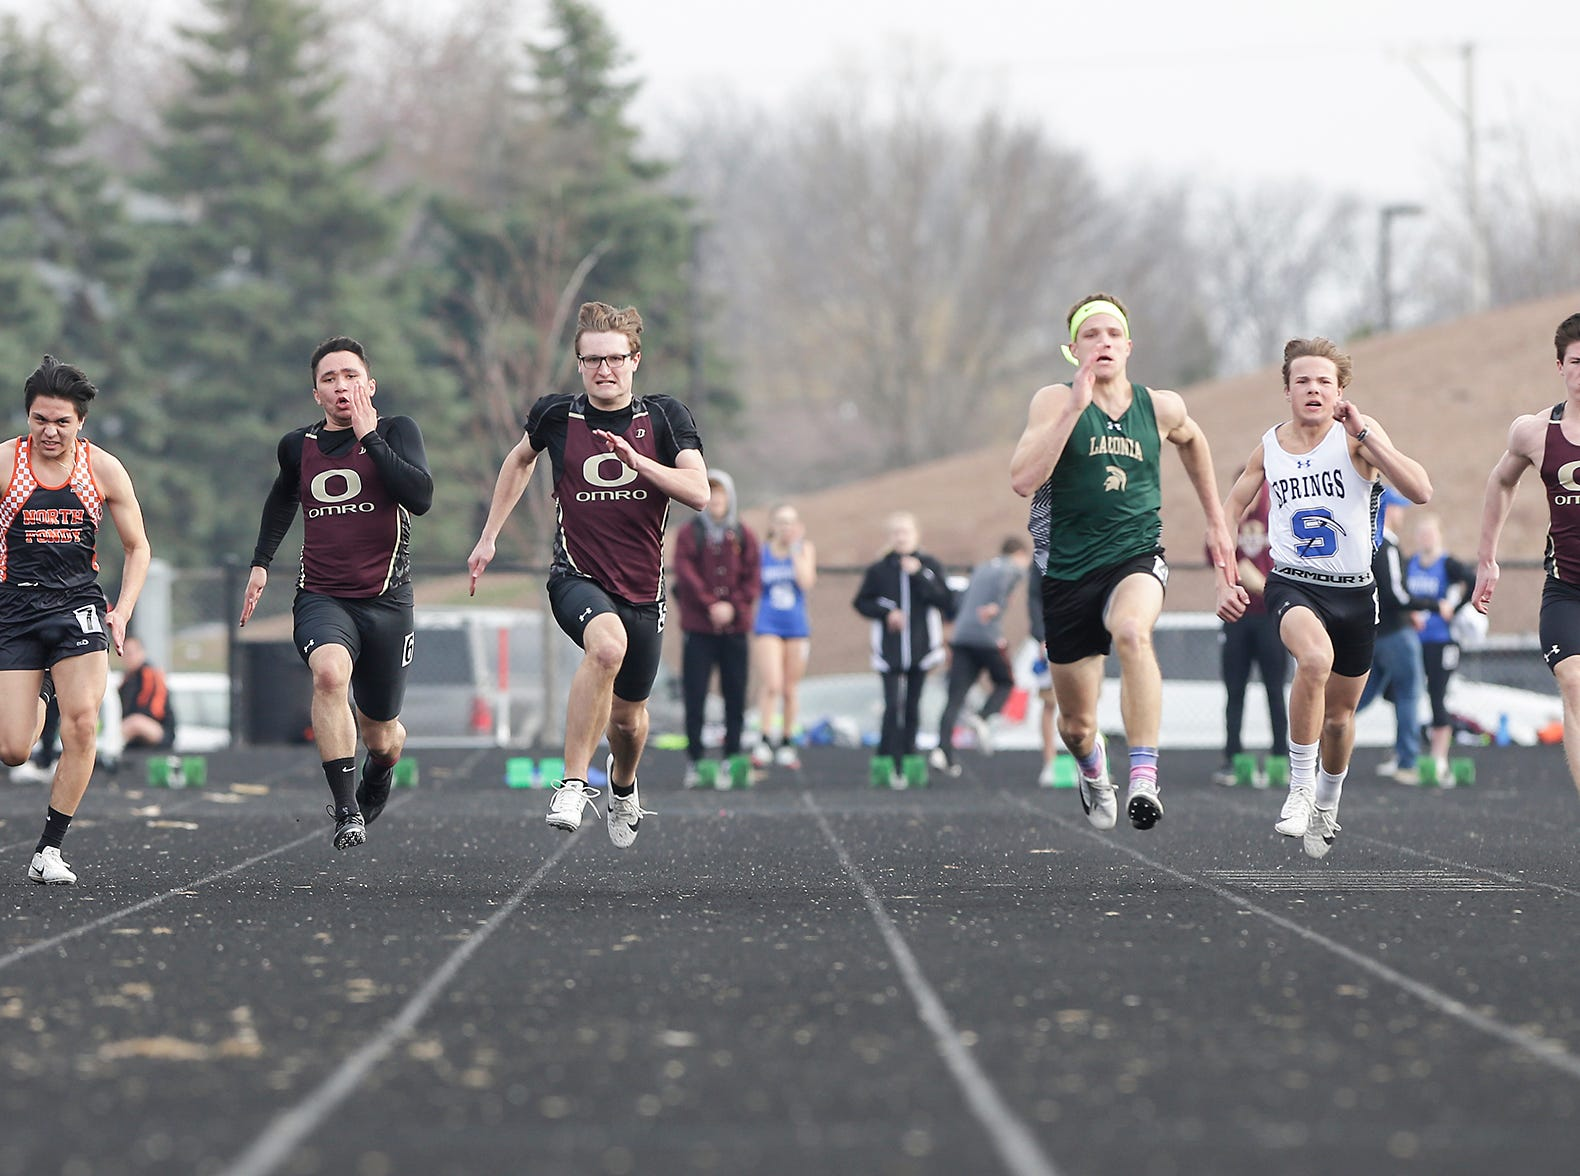 North Fond du Lac High School's Erick Gonzalez, Omro's Elijah Williams and Sam Joachim, Laconia's Jacob Davies, St. Mary's Springs Isaac Hyland and Omro's Logan Reiter take part in the boys 100 meter dash Tuesday, April 16, 2019 at North Fond du Lac High School in North Fond du Lac, Wis. Doug Raflik/USA TODAY NETWORK-Wisconsin